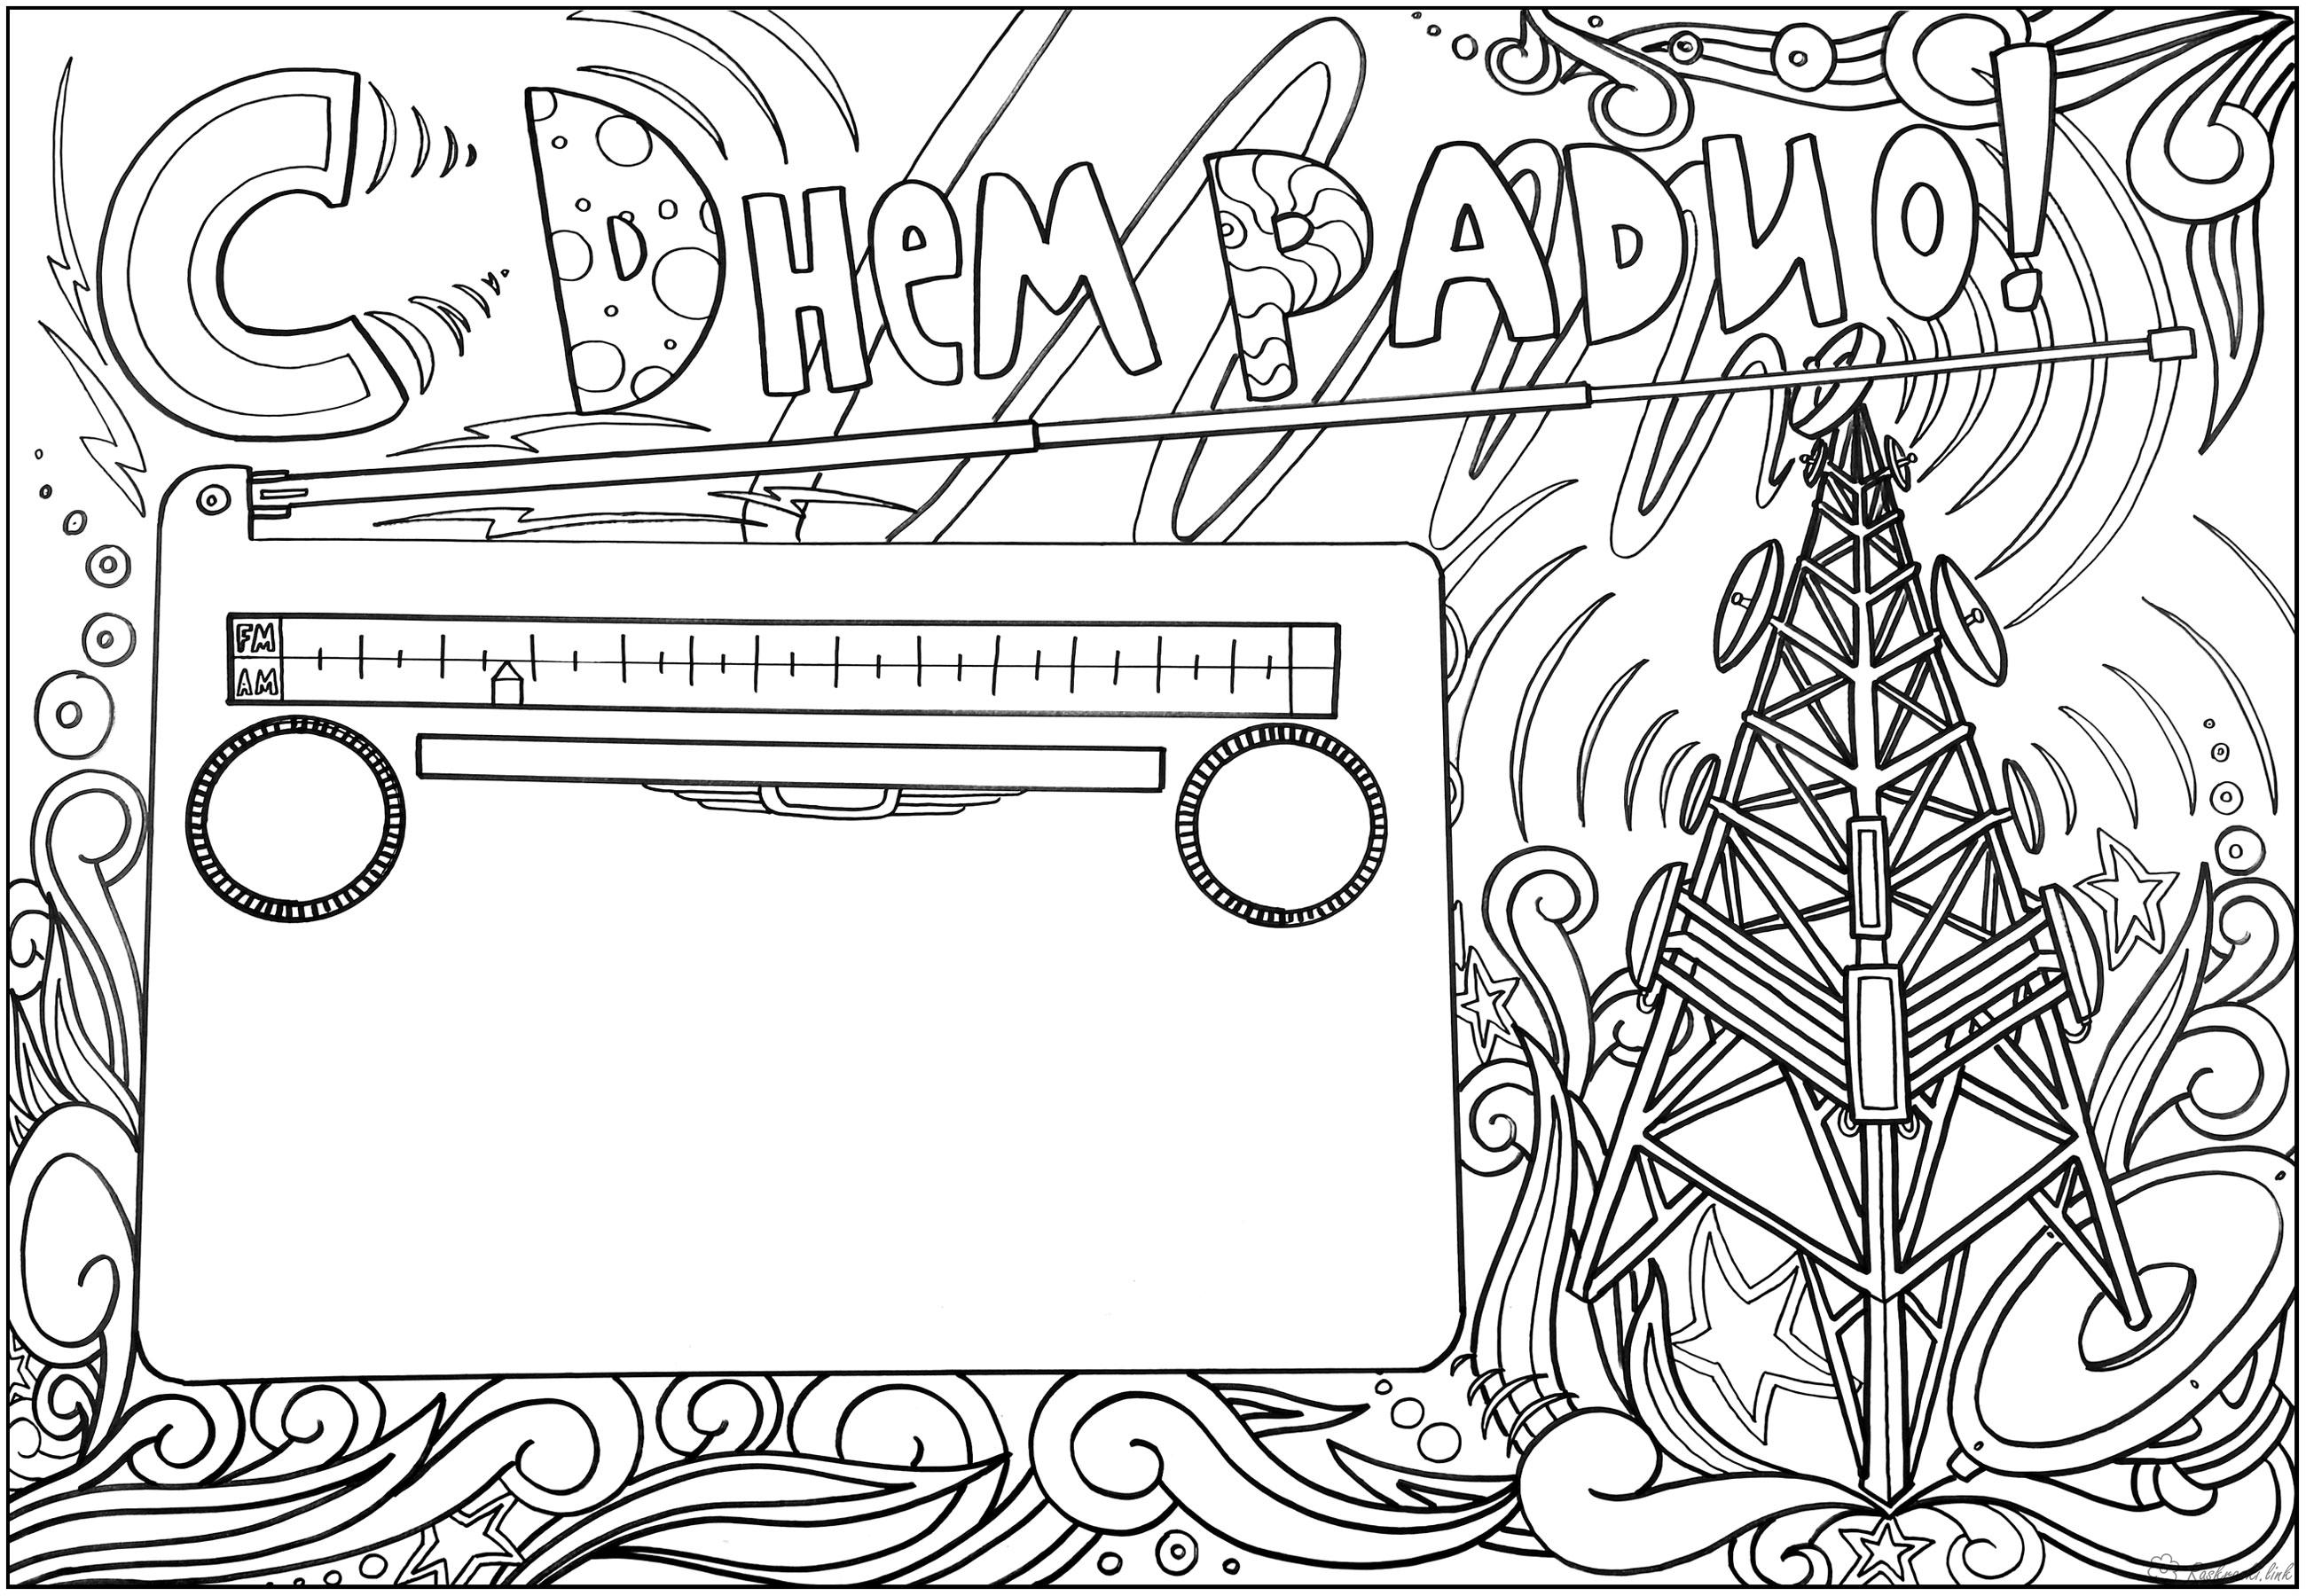 Coloring Radio day coloring pages holidays, Day of Radio, radio